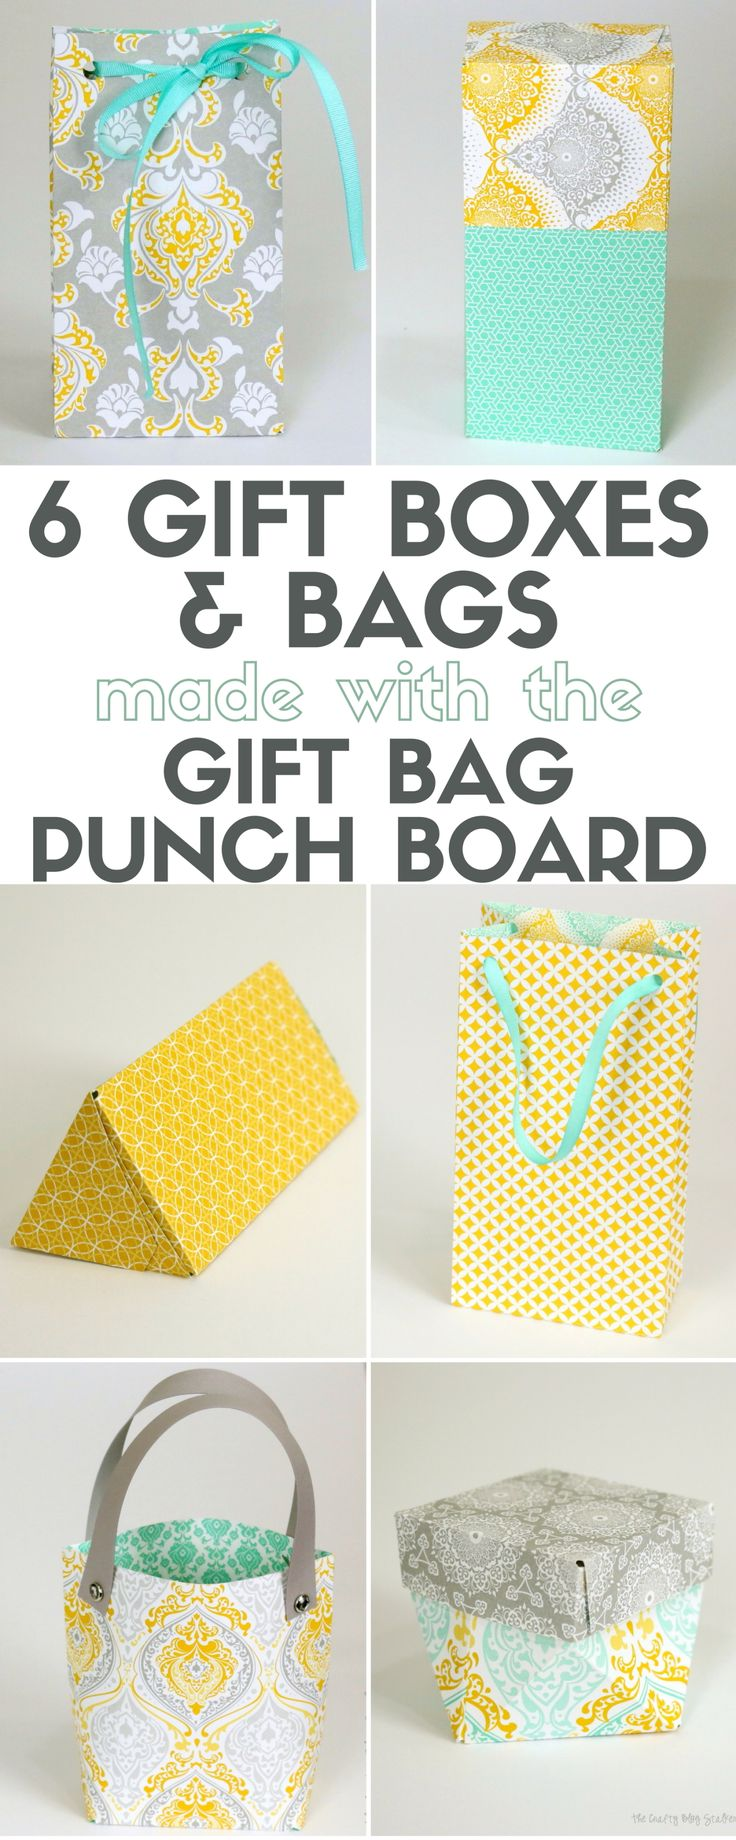 How to make 6 different Gift Boxes and Bags with the Gift Bag Punch Board. Personalize gift giving fun for birthdays, weddings, Christmas or just because!